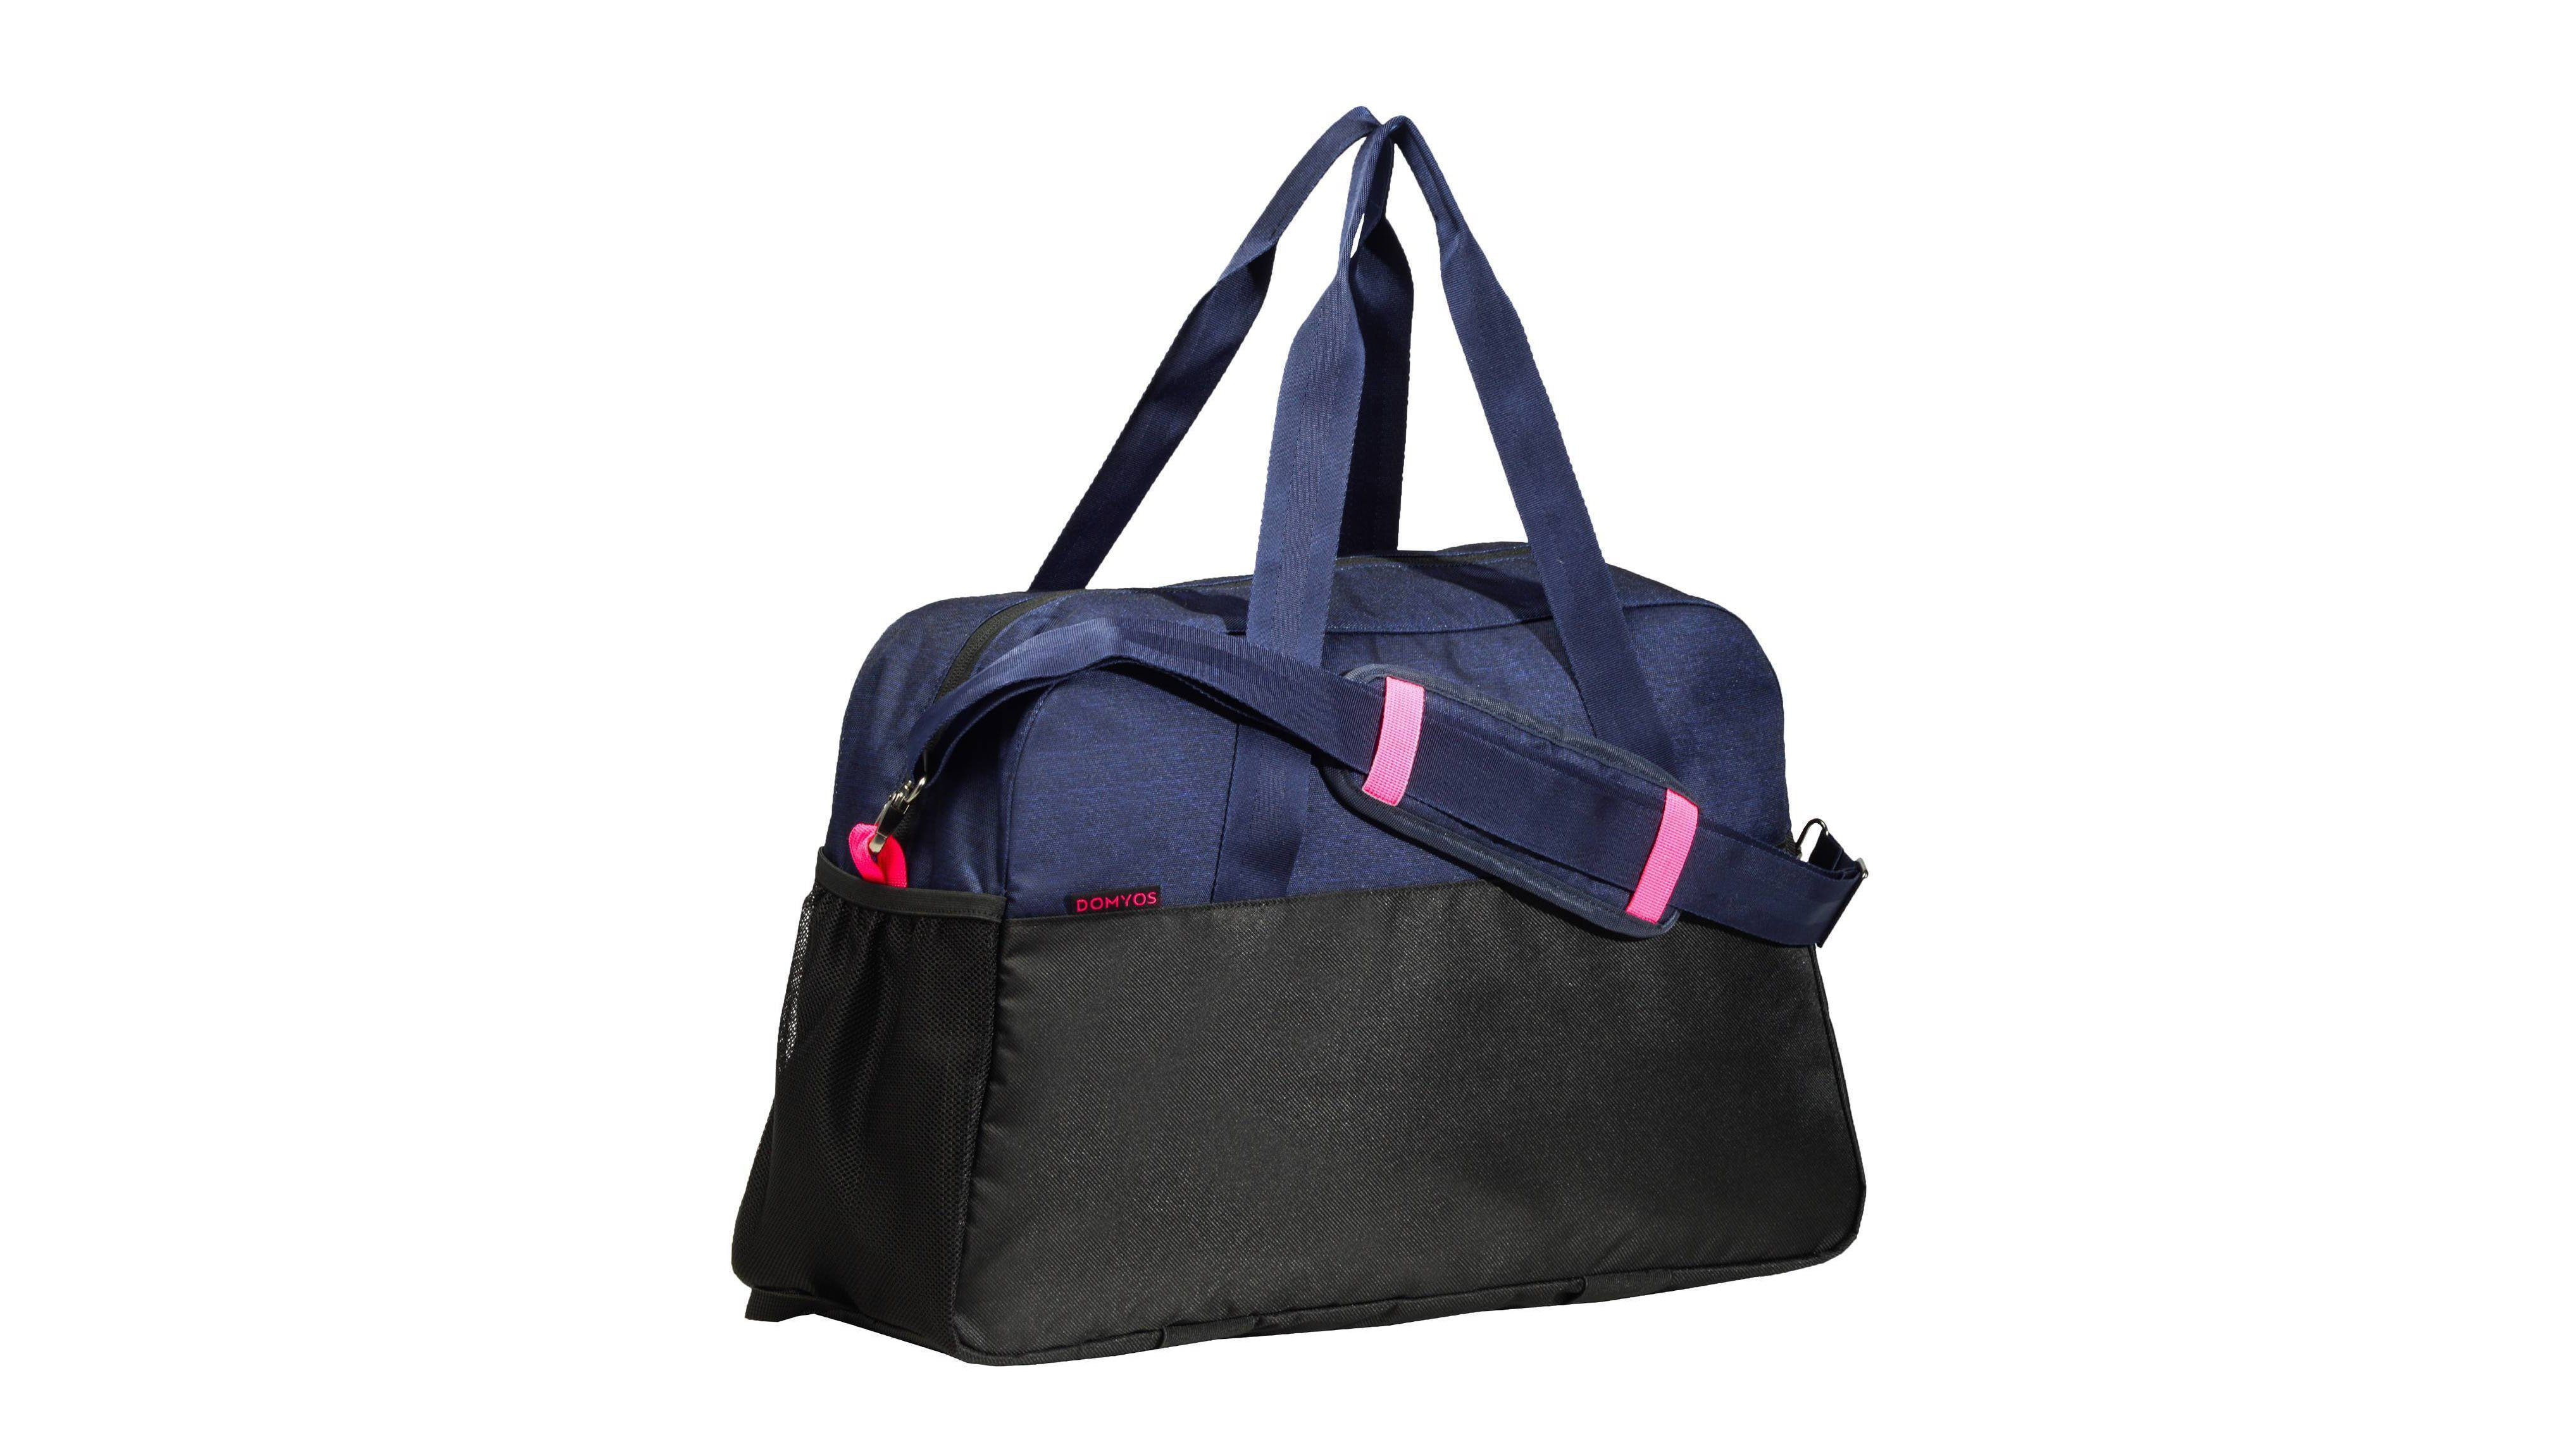 b2886834e63e This bargain bag has all sorts of clever features such as elasticated  straps on the bottom to carry a yoga mat